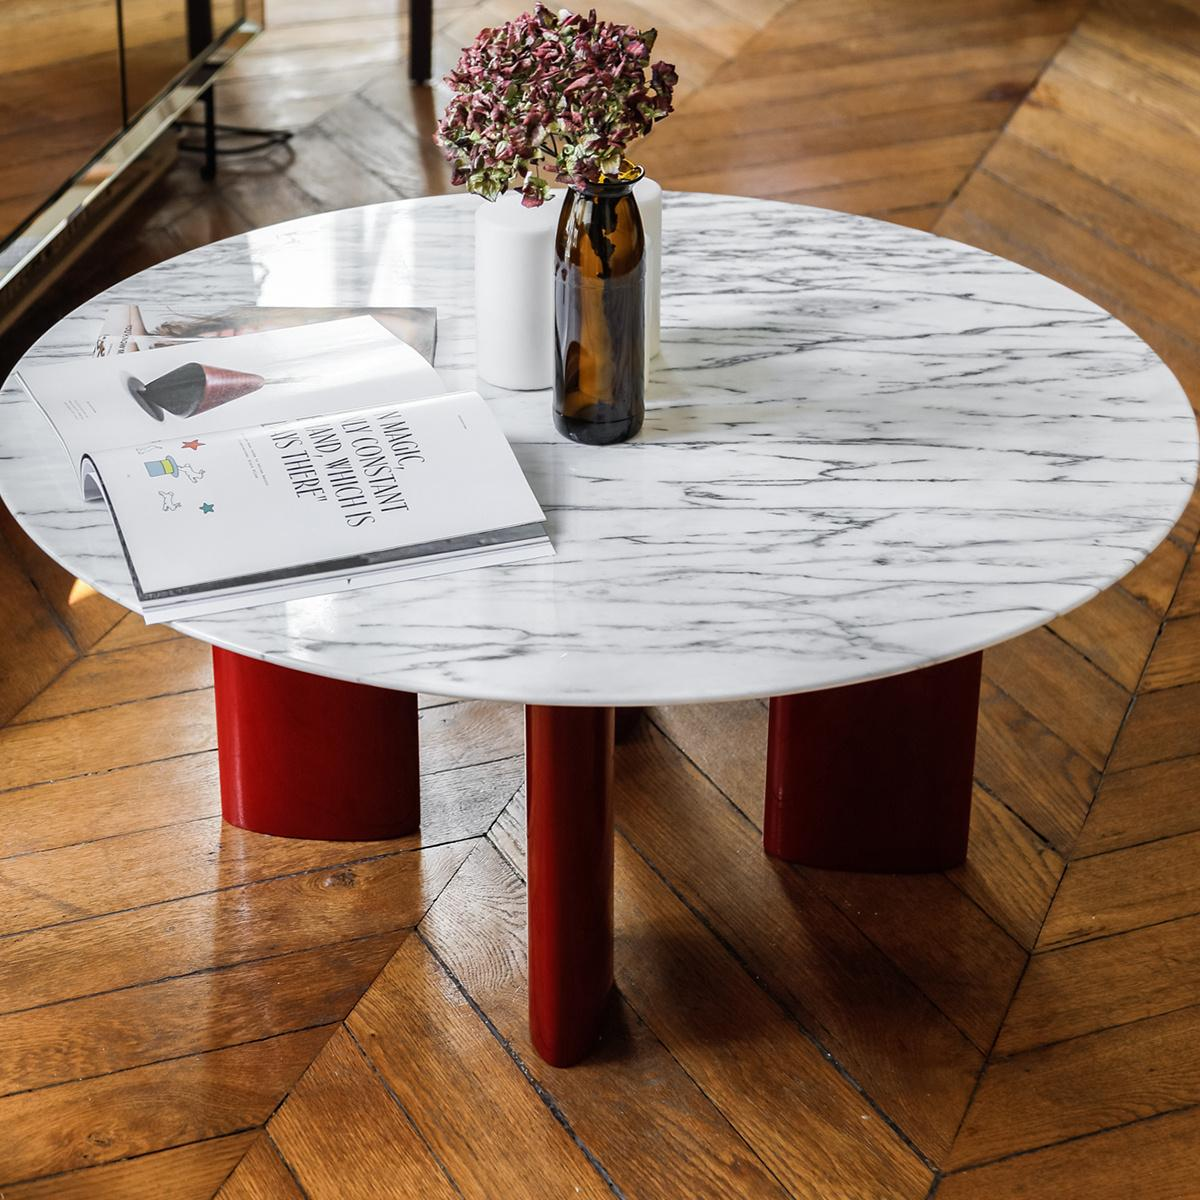 Contemporary Coffee Table With Red Lacquered Legs And White Marble